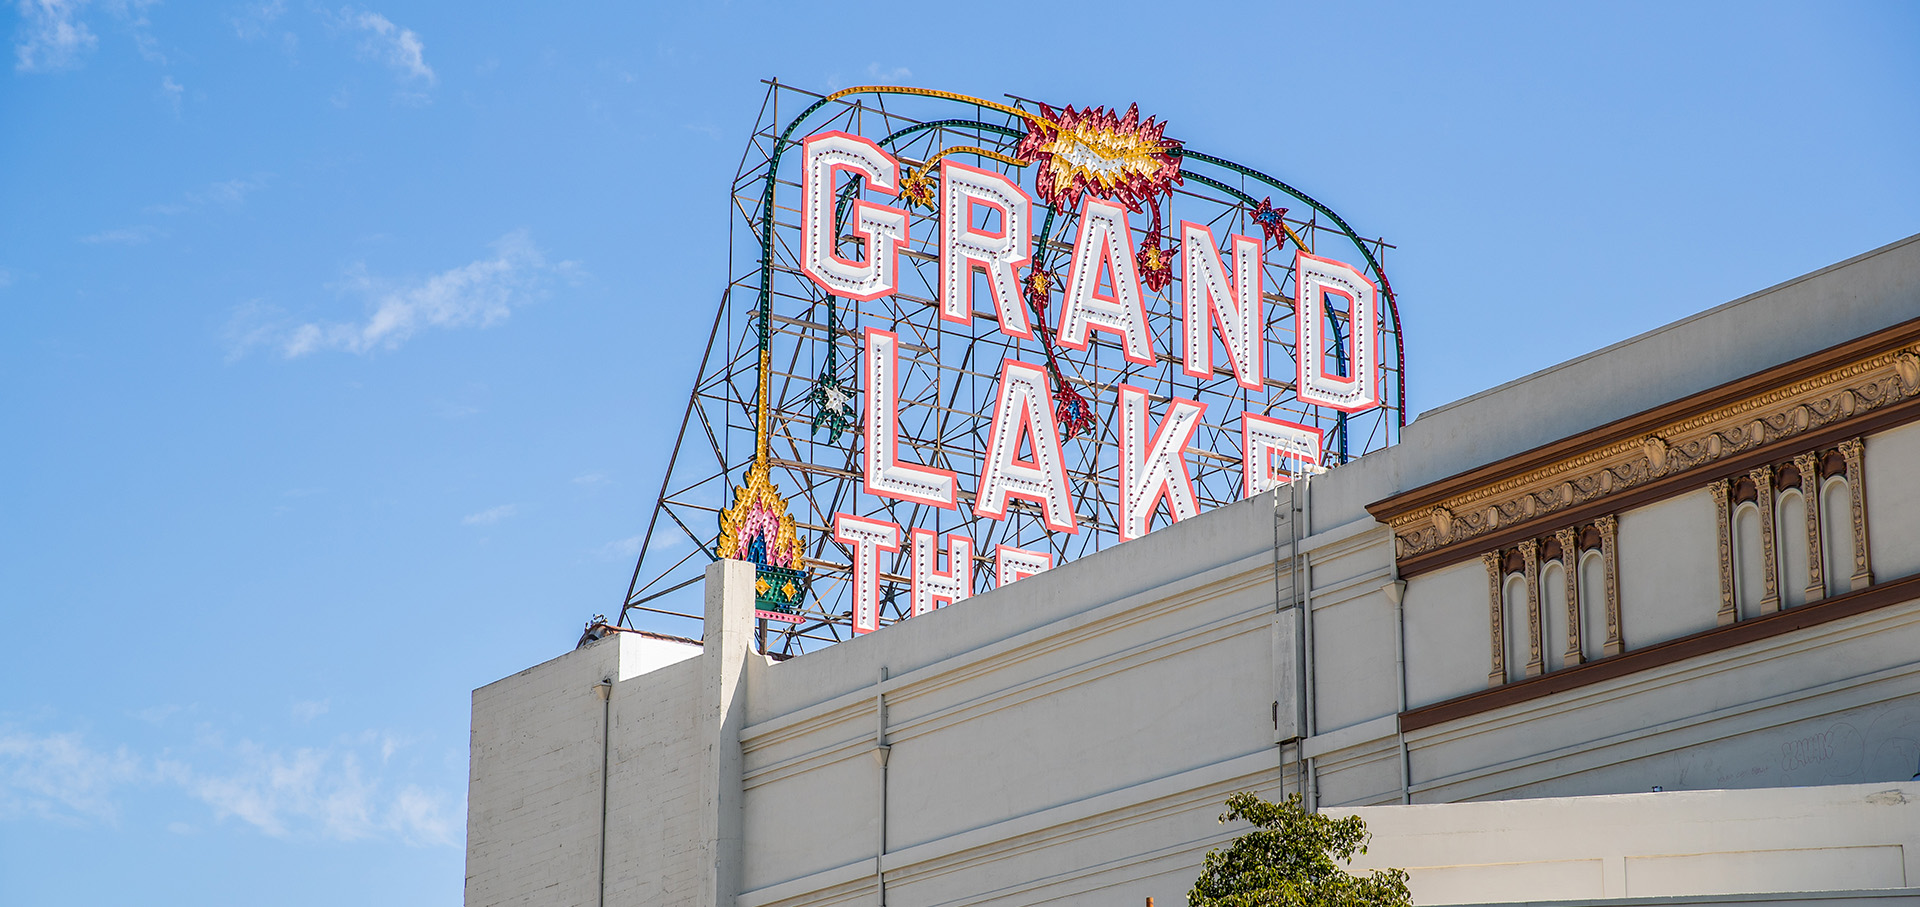 The Grand at Lake Merritt